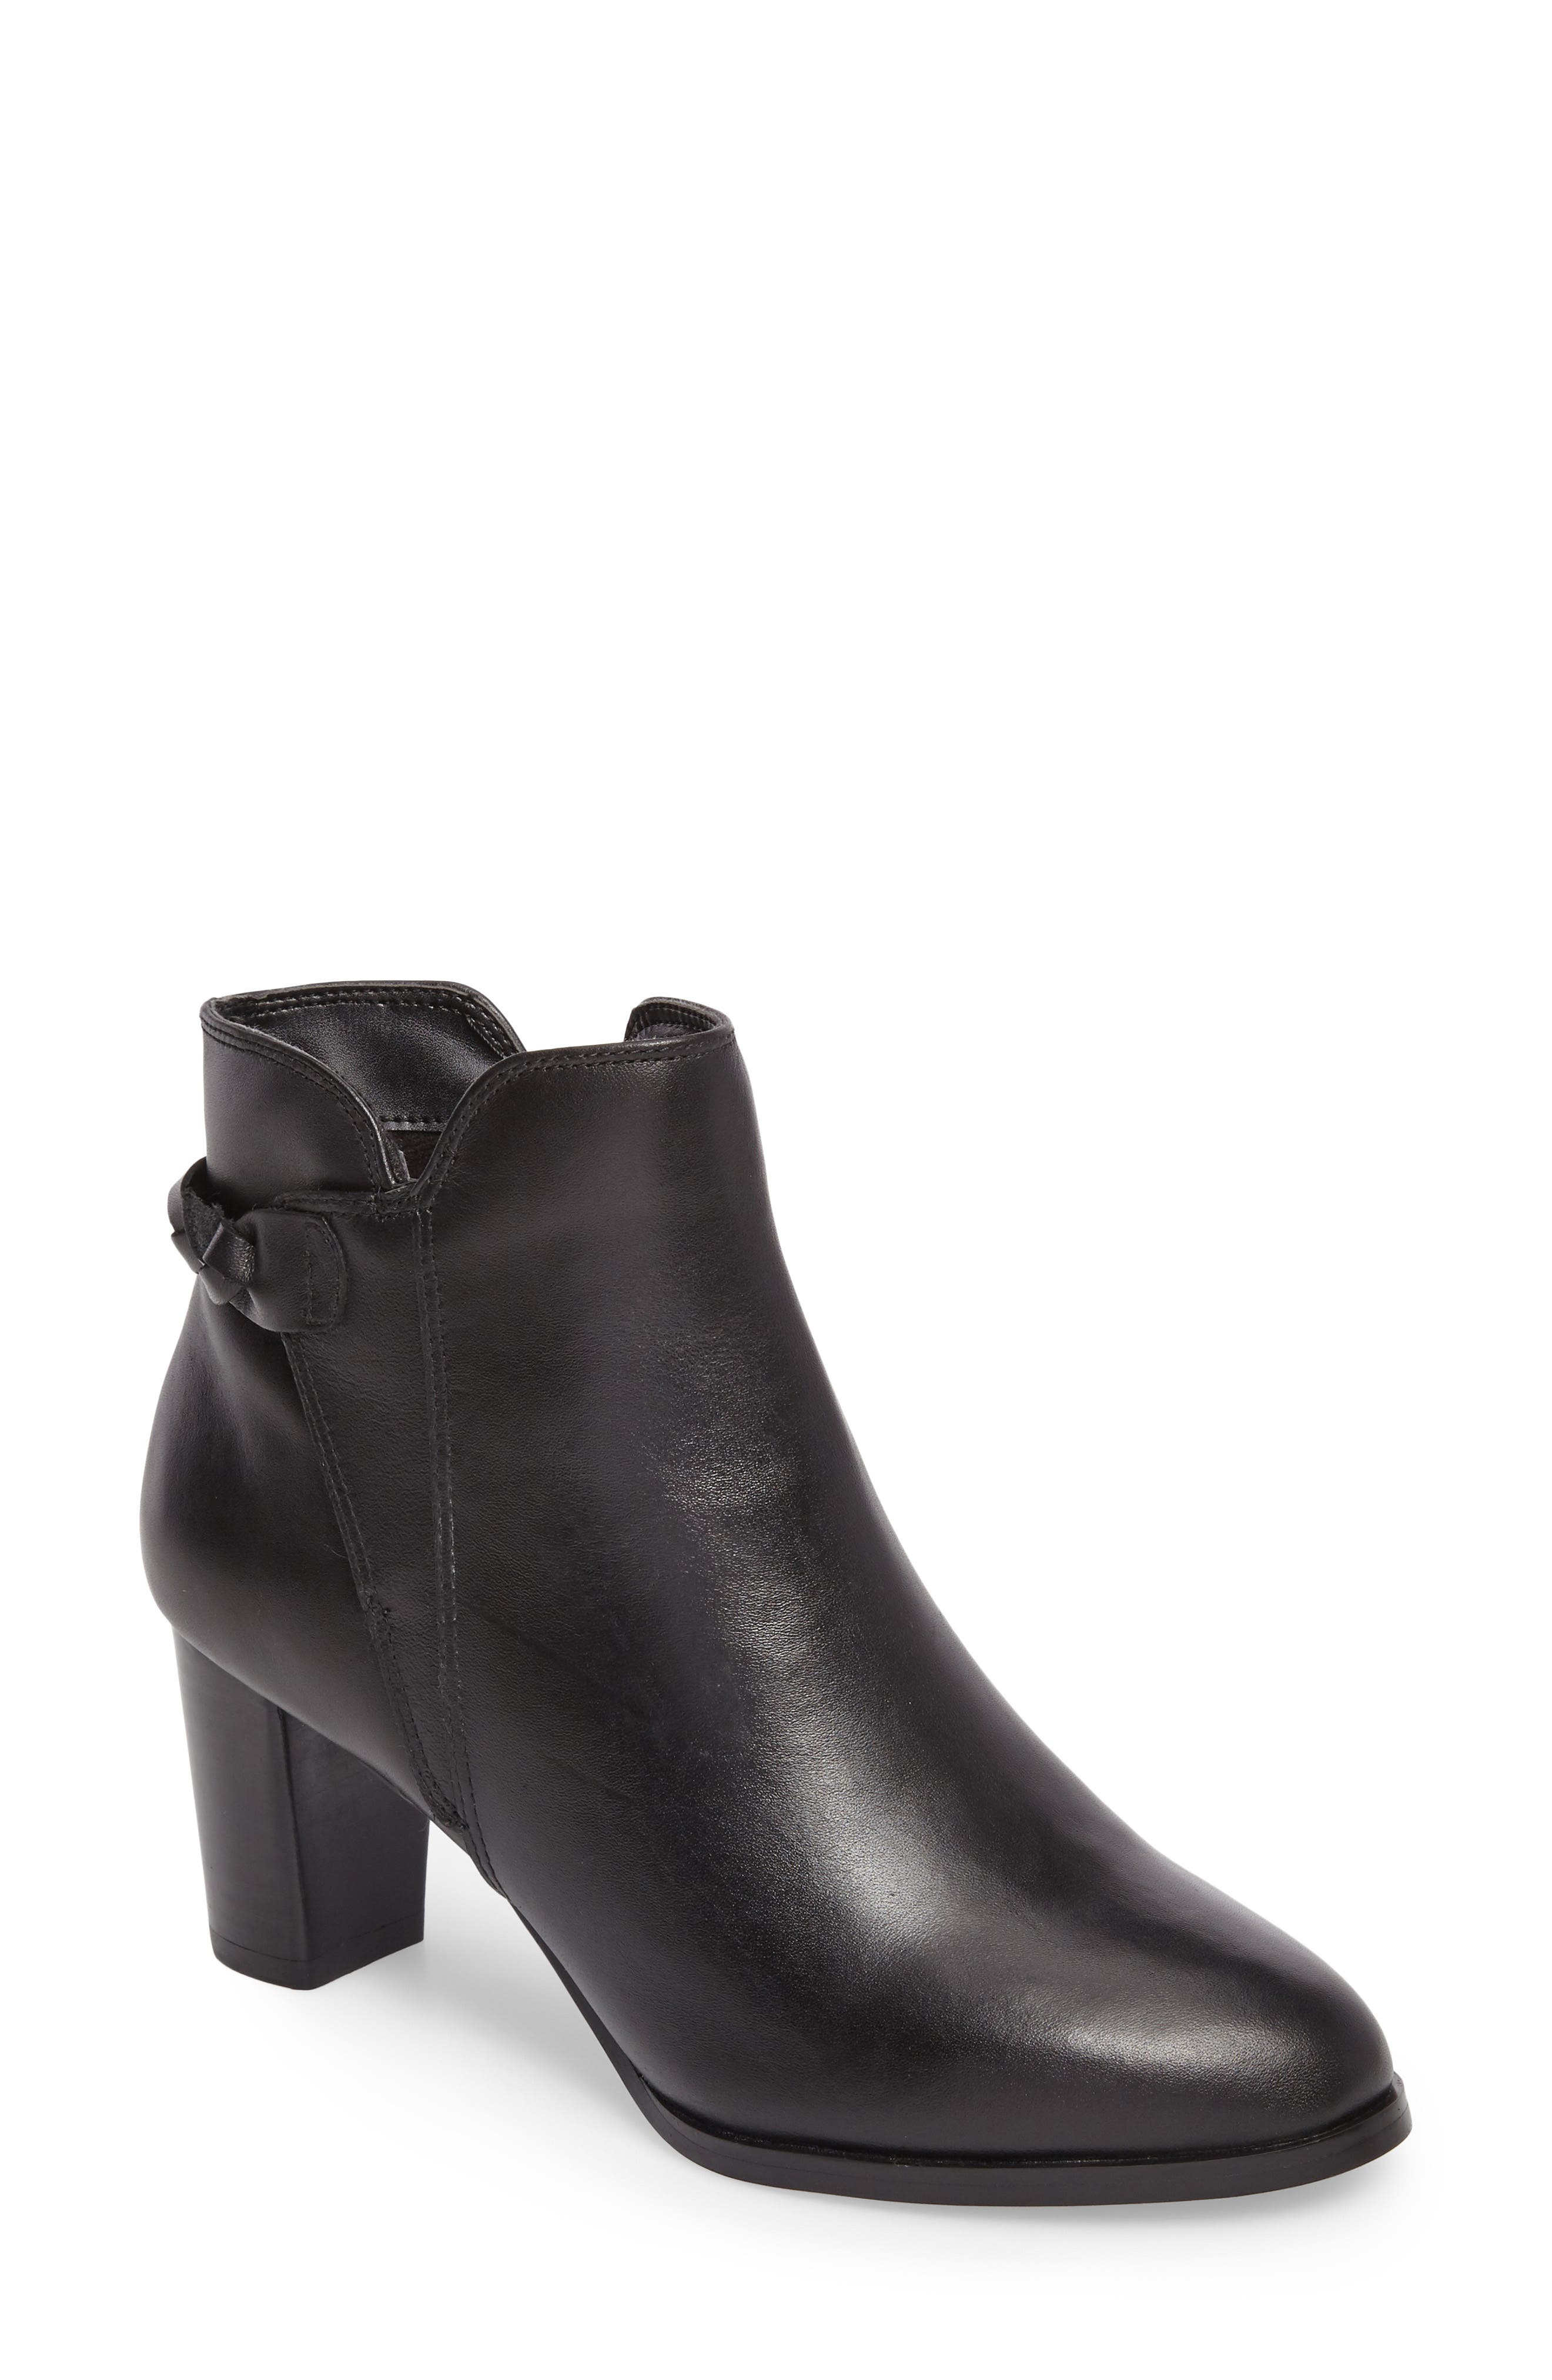 David Tate Doran Bootie, Black